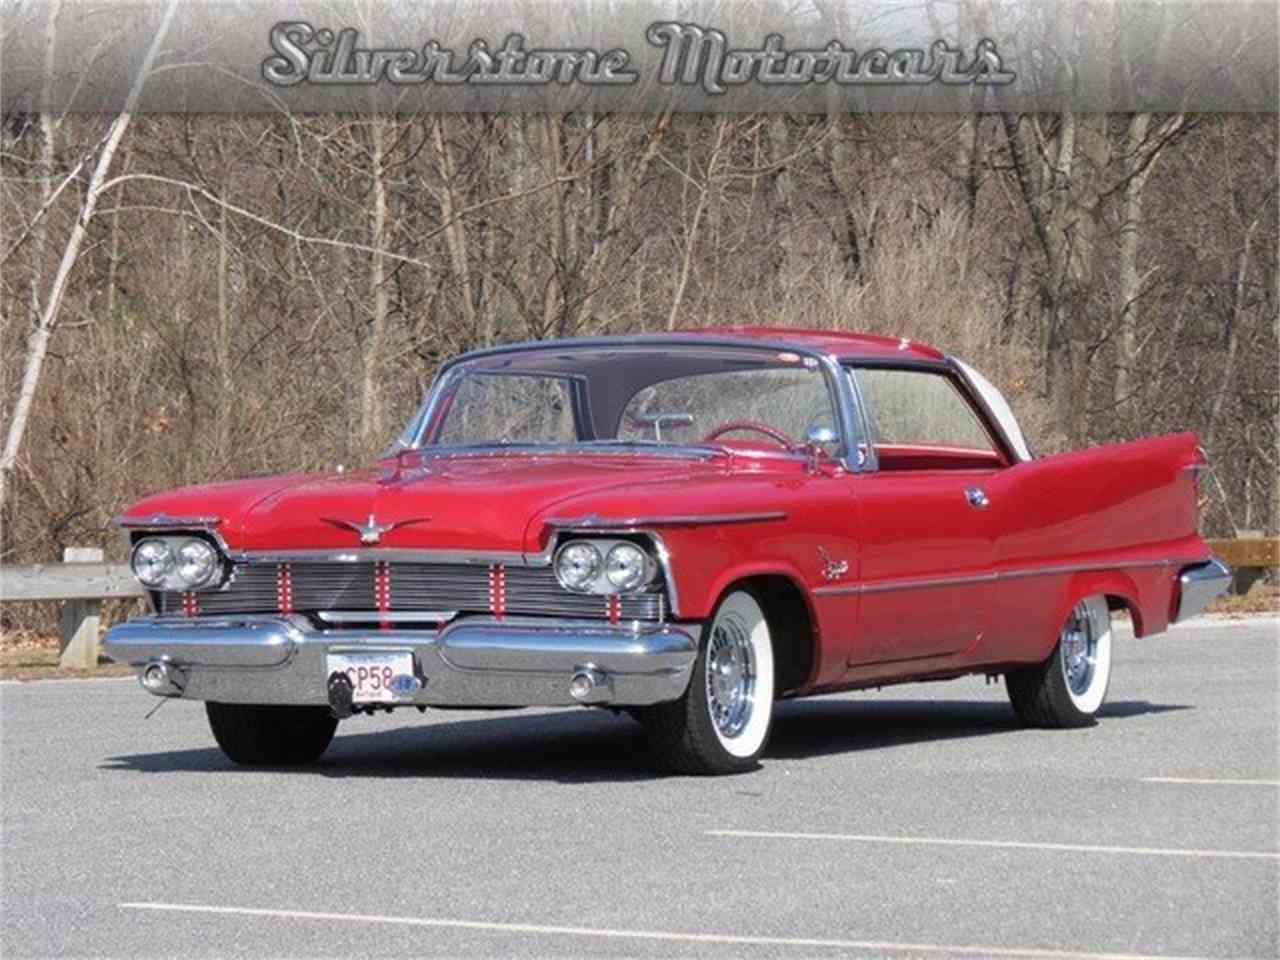 Large Picture of '58 Chrysler Southampton located in Massachusetts - $47,950.00 - F8I7